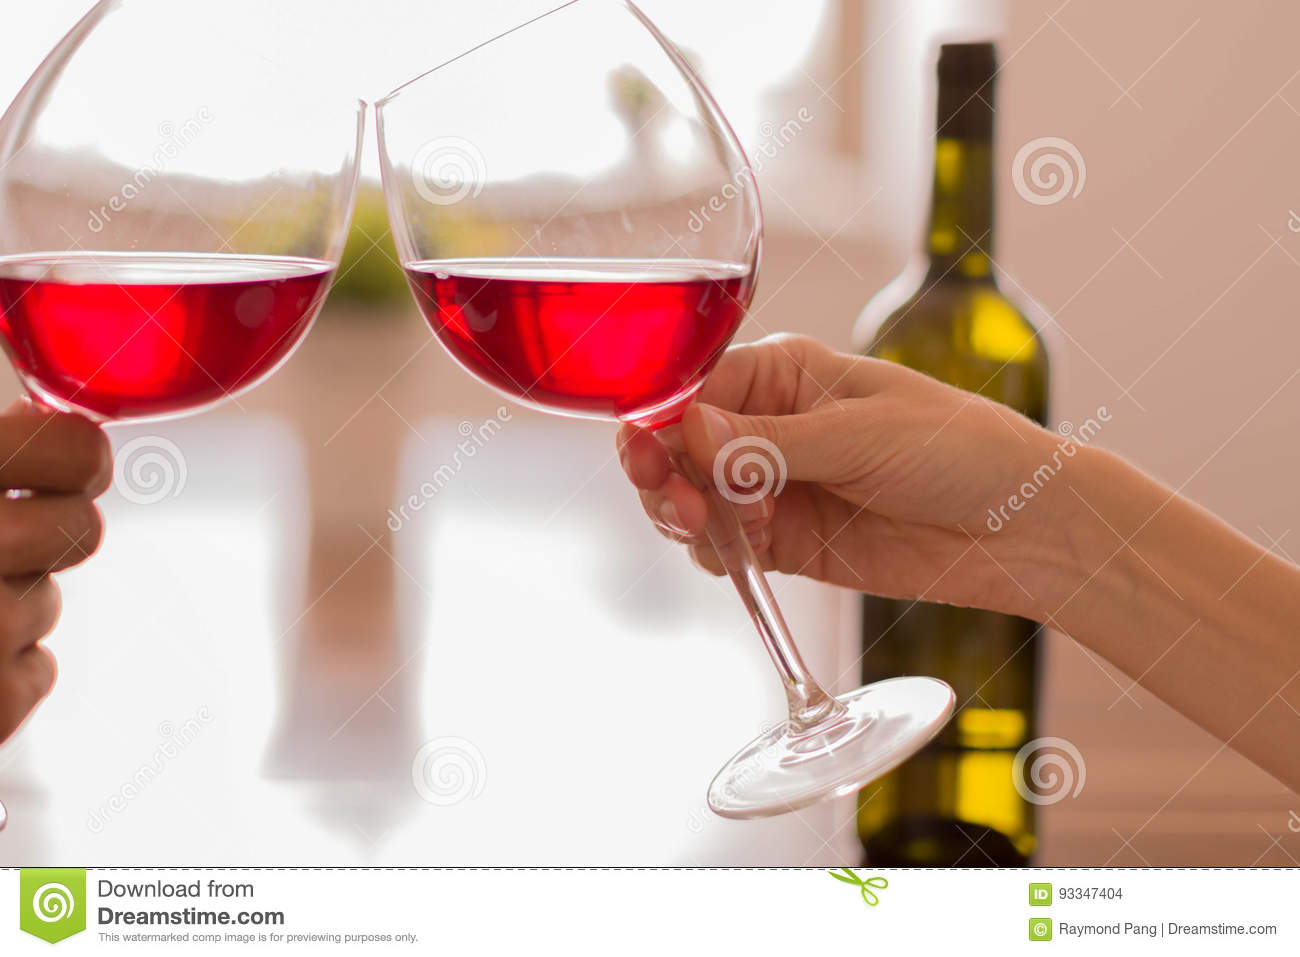 Celebrating by clinking glasses of red wine